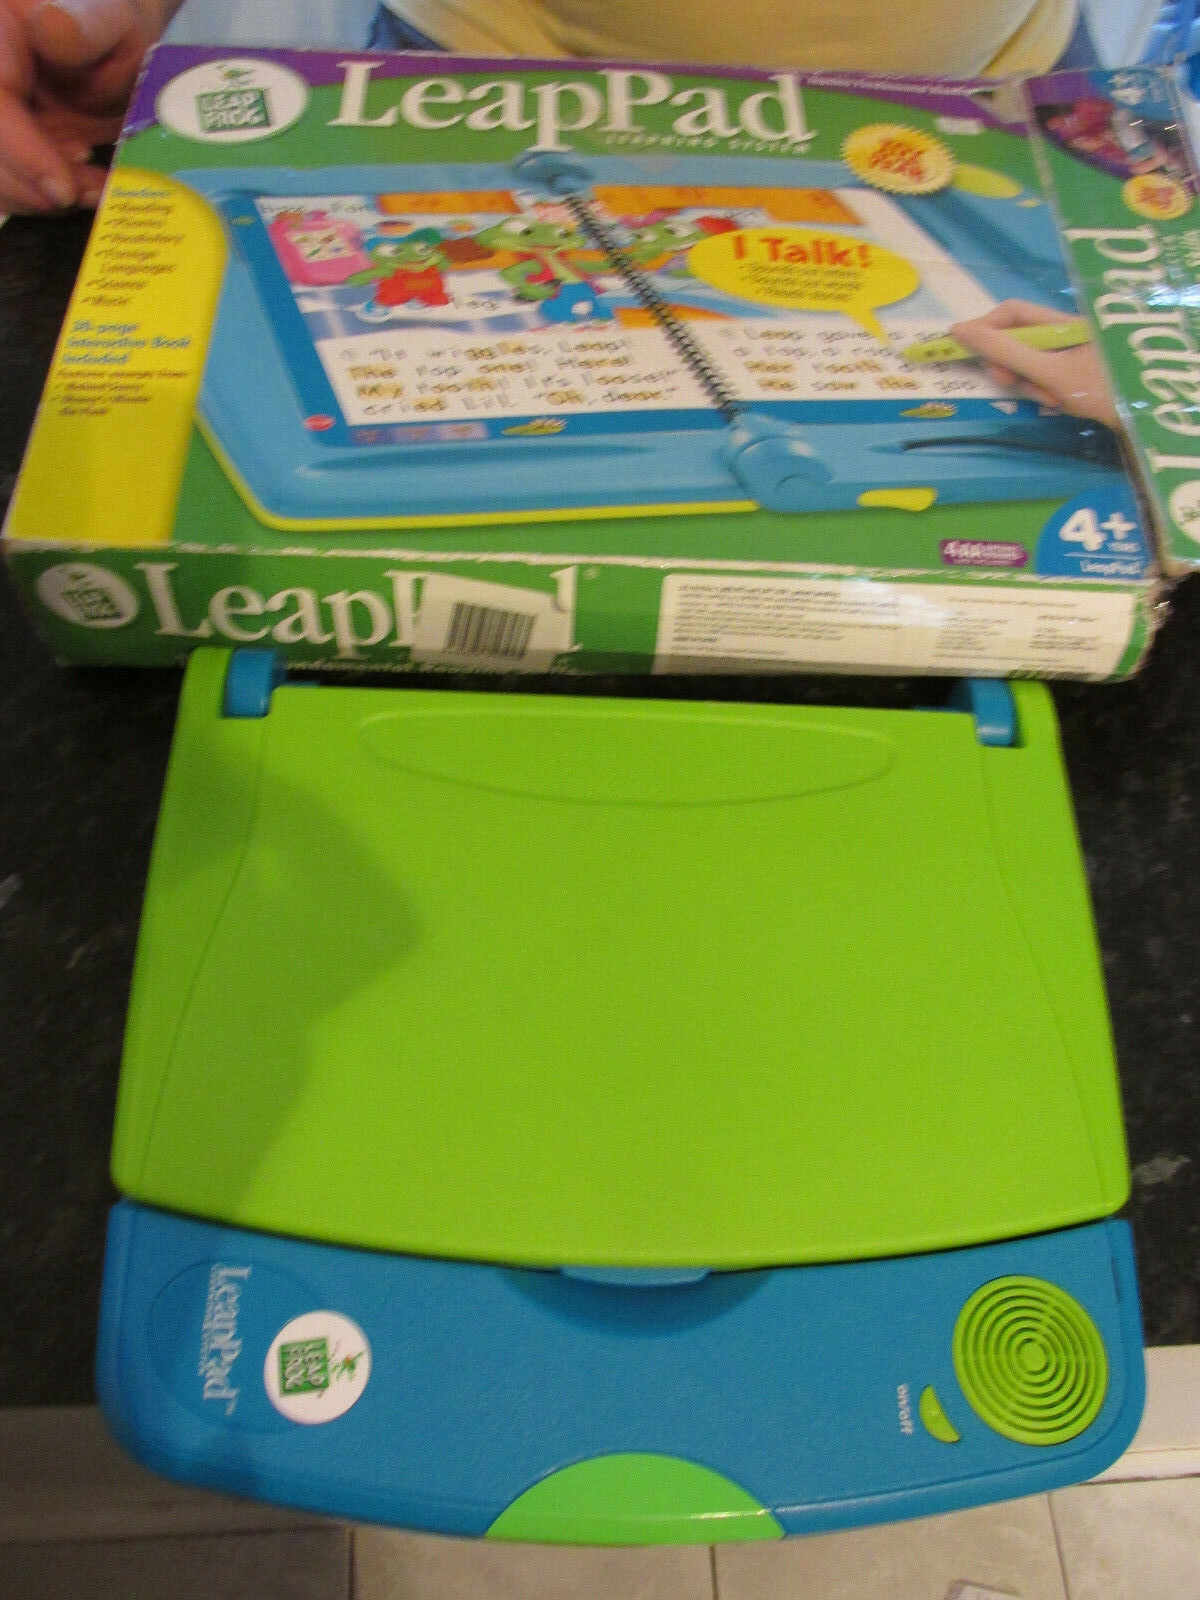 LEAPFROG LEAP PAD LEARNING SYSTEM AGE 4+ SCOOBY DOO SPIDERMAN TIGGER THOMAS TANK